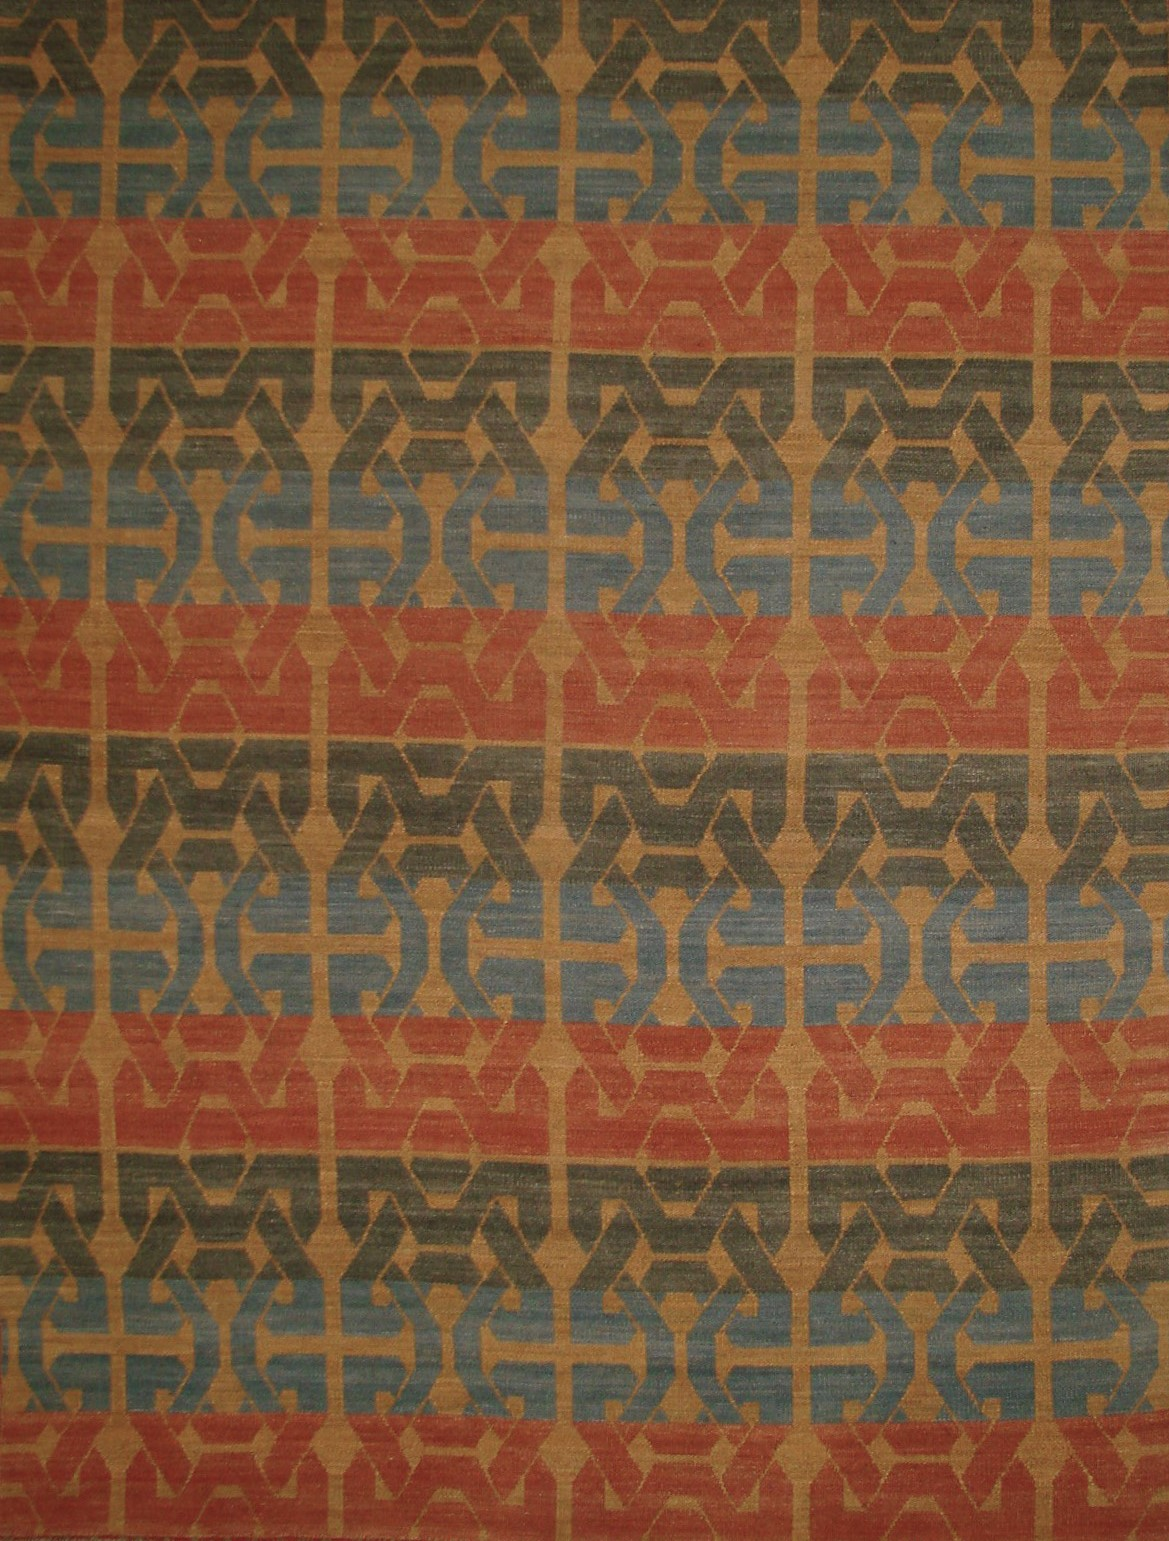 Woven Rugs Flat Weave Rugs Amp Dhurries Dh Wv Sd 19 Wb